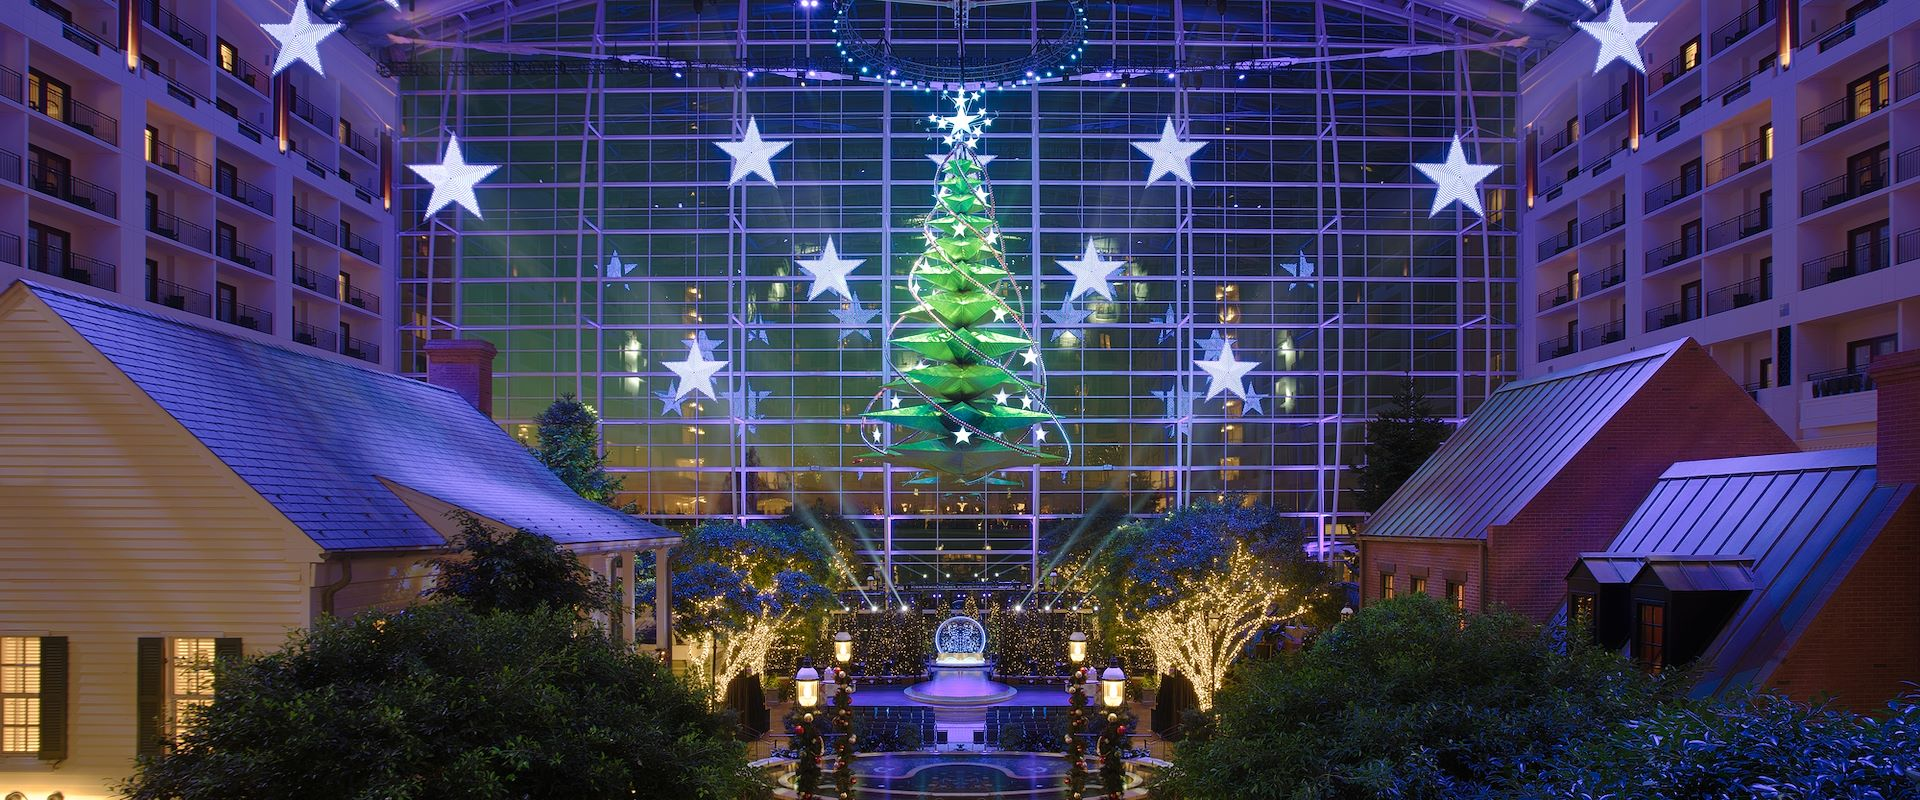 Gaylord National Atrium Christmas Tree in lights